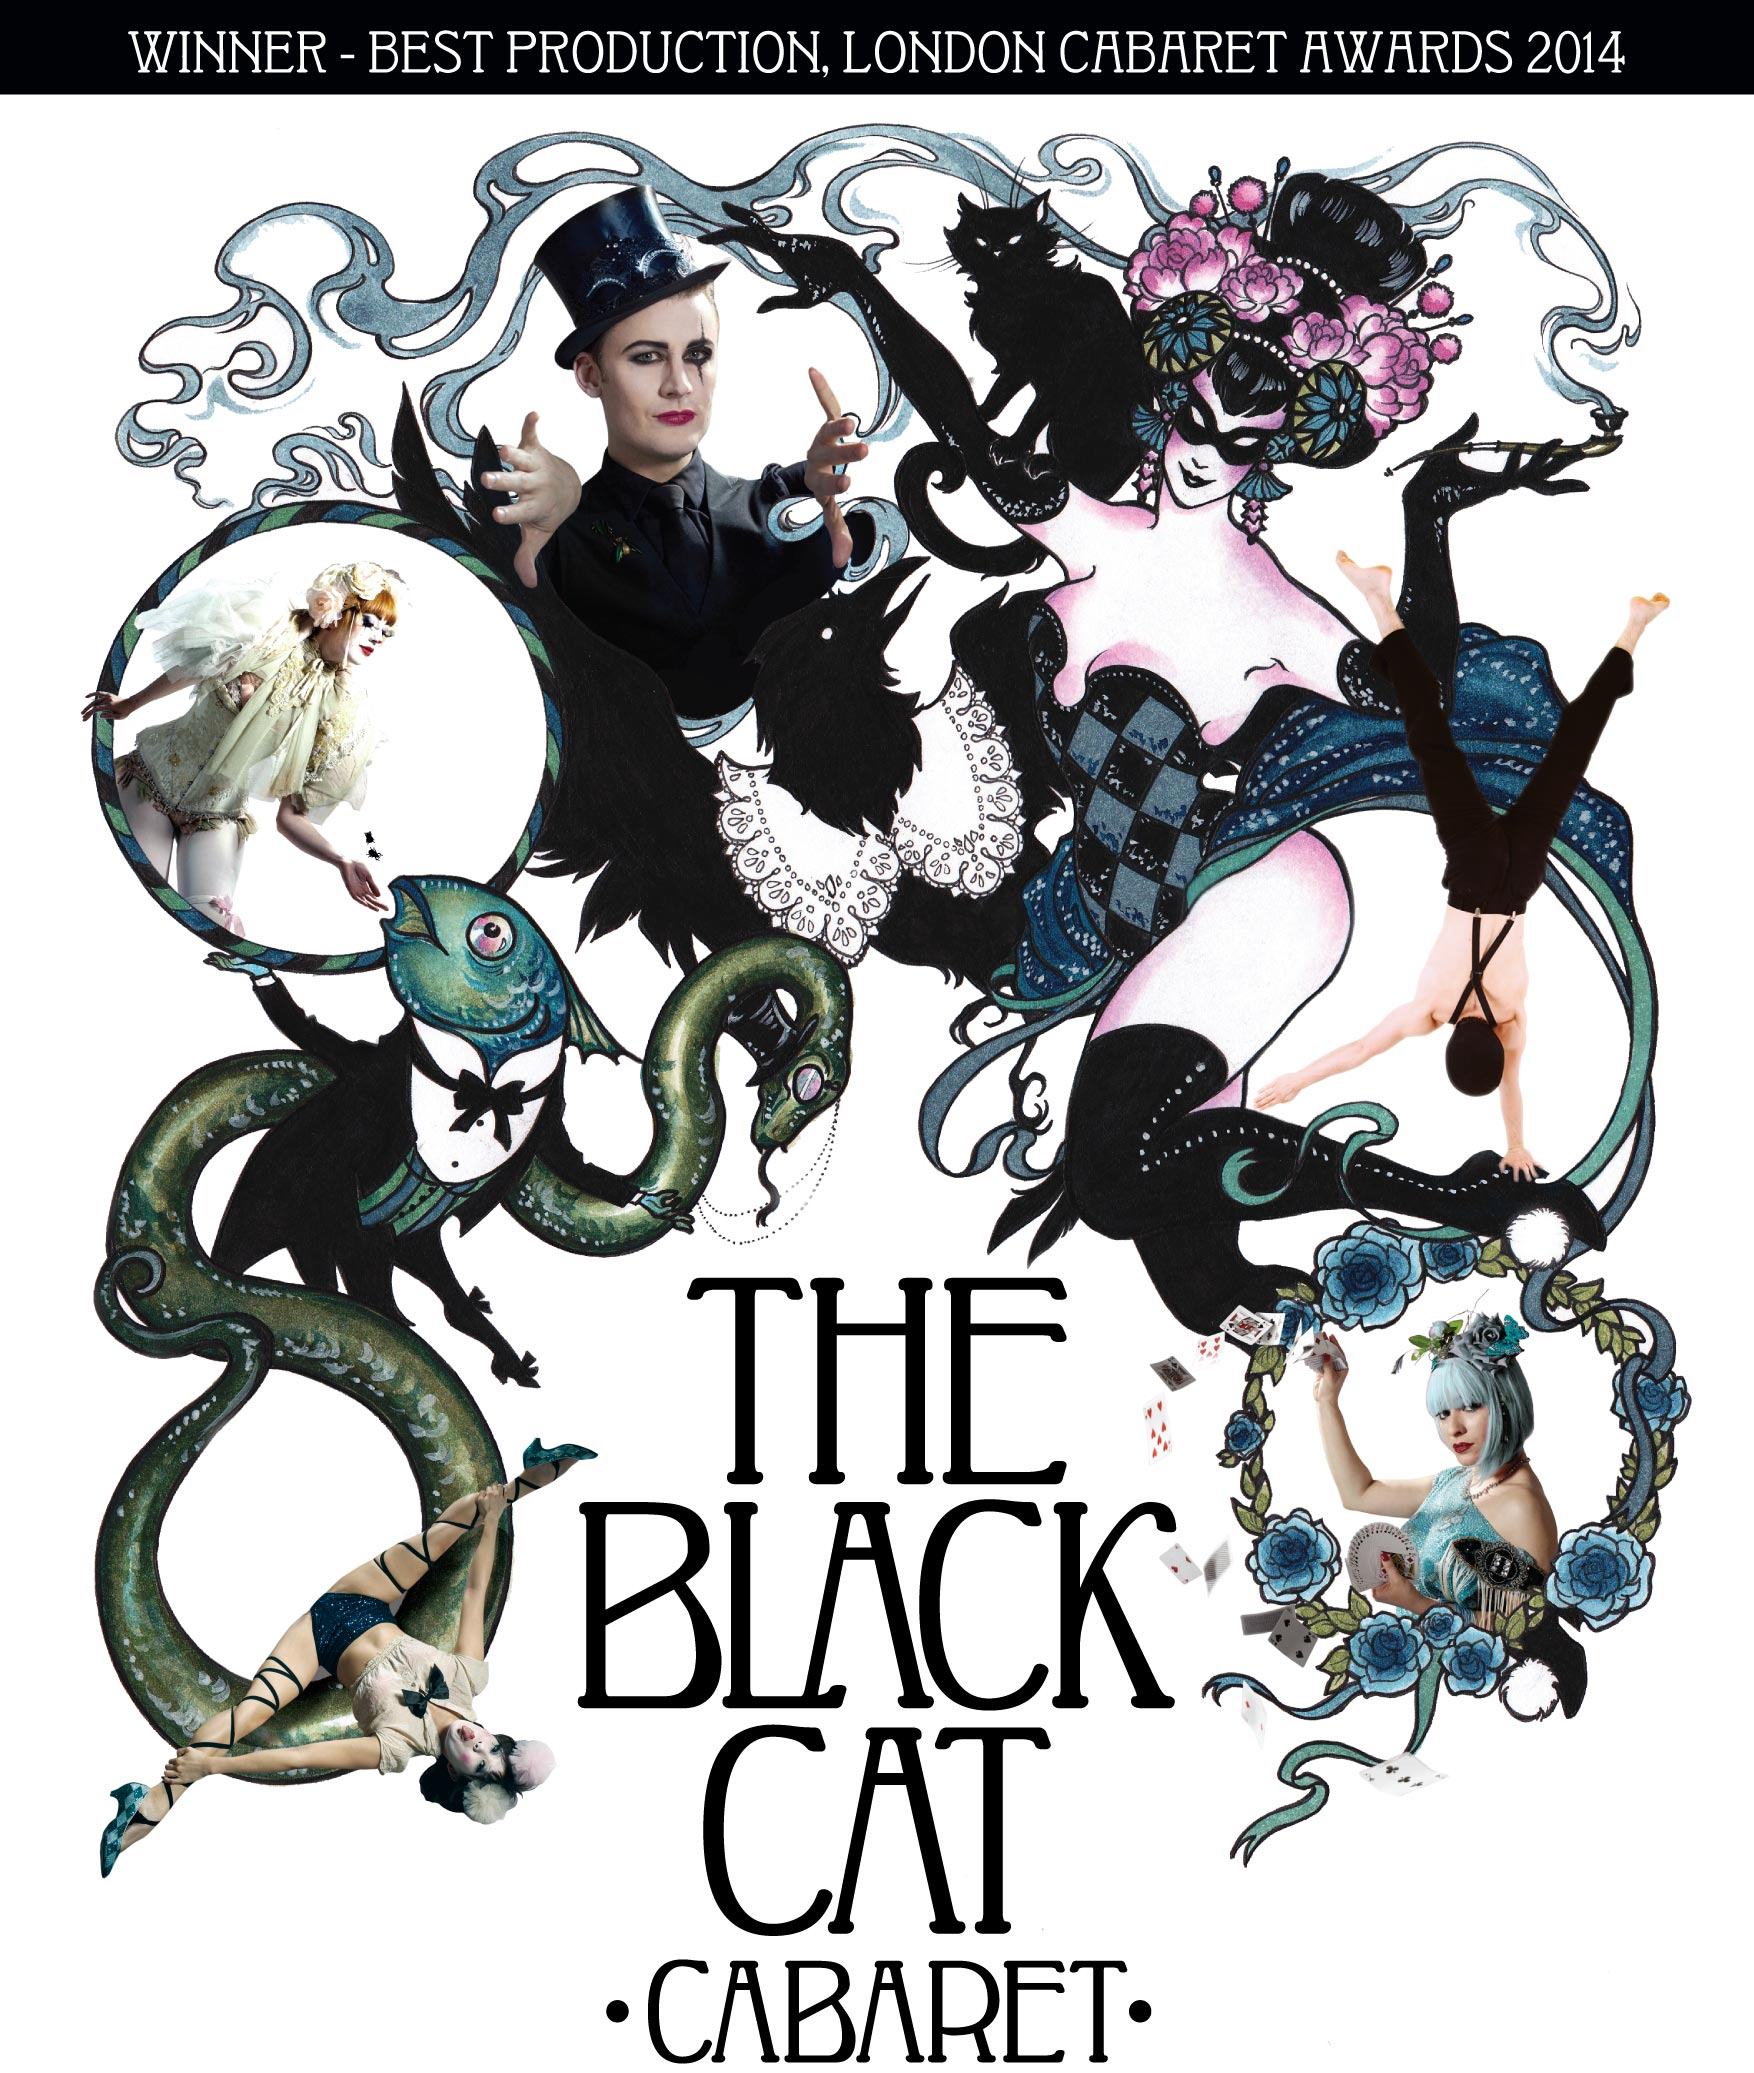 The Black Cat Cabaret, new at Cafe Royal Hotel - poster 2013